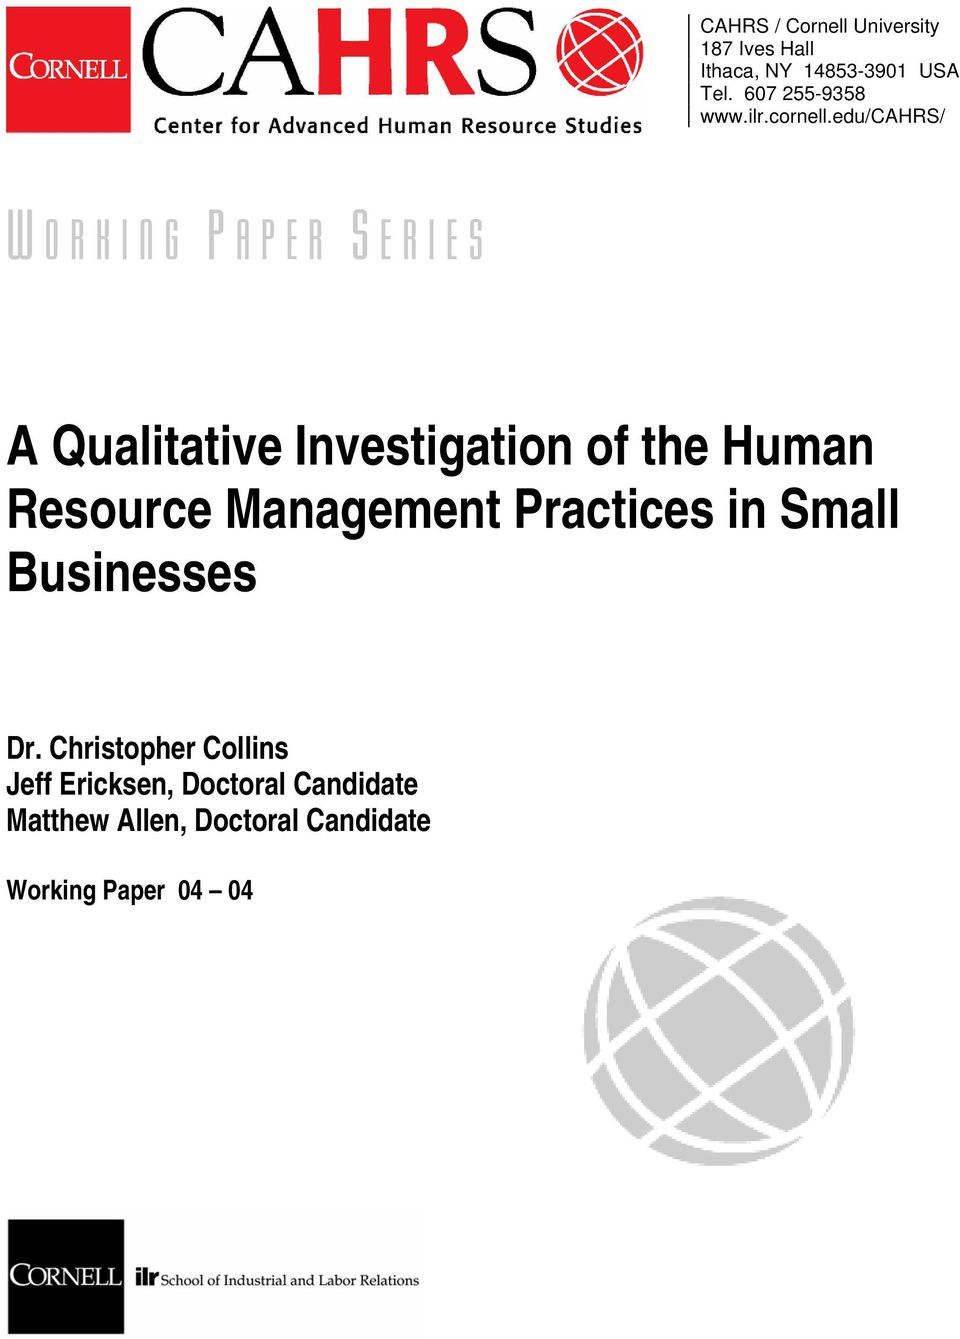 edu/cahrs/ W ORKING P APER S ERIES A Qualitative Investigation of the Human Resource